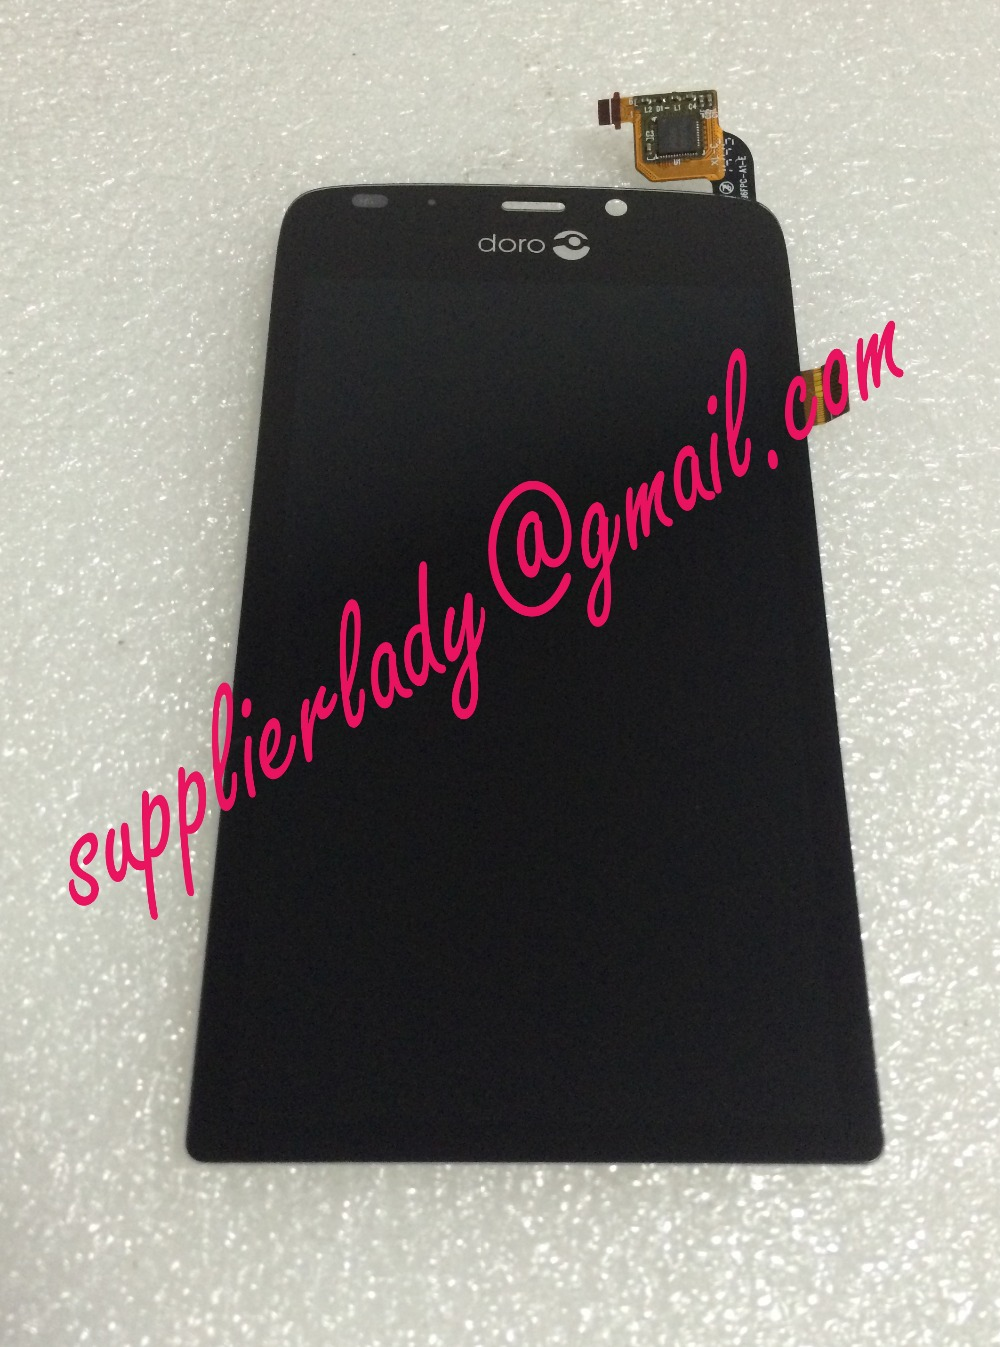 Original and New LCD screen with touch screen Assembly for Doro Liberto 82 free shipping original and new lcd screen with touch screen truly ips5k0573fpc a1 e wz a ips5k0573fpc a1 e ips5k0573fpc assembly free shipping